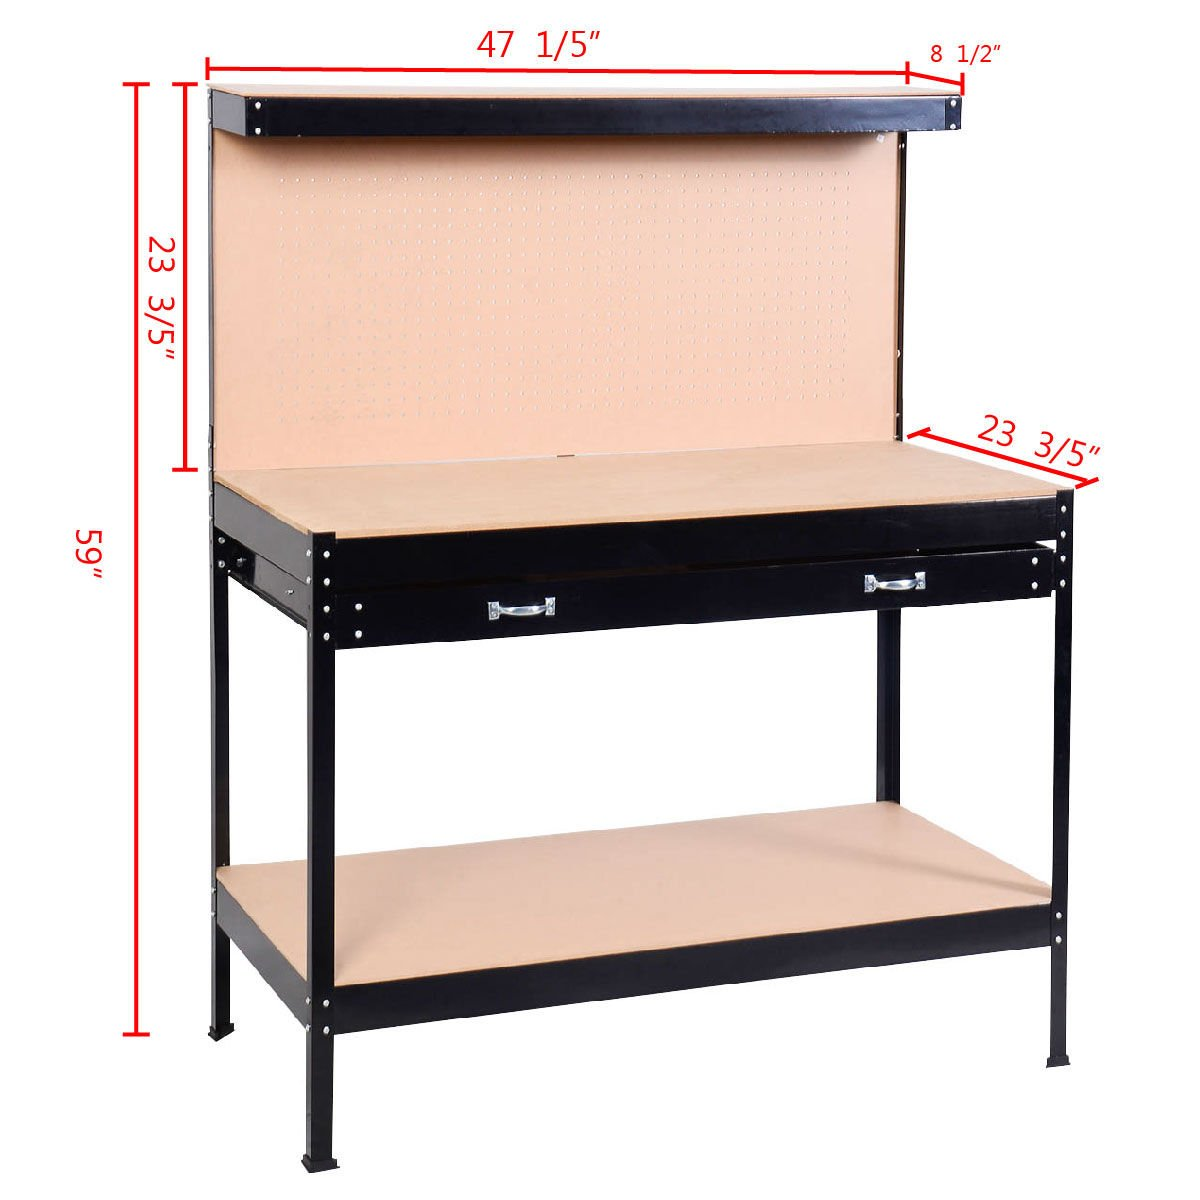 Giantex Steel Frame Work Bench Tool Storage Tool Workshop Table W/ Drawers  And Peg Boar     Amazon.com